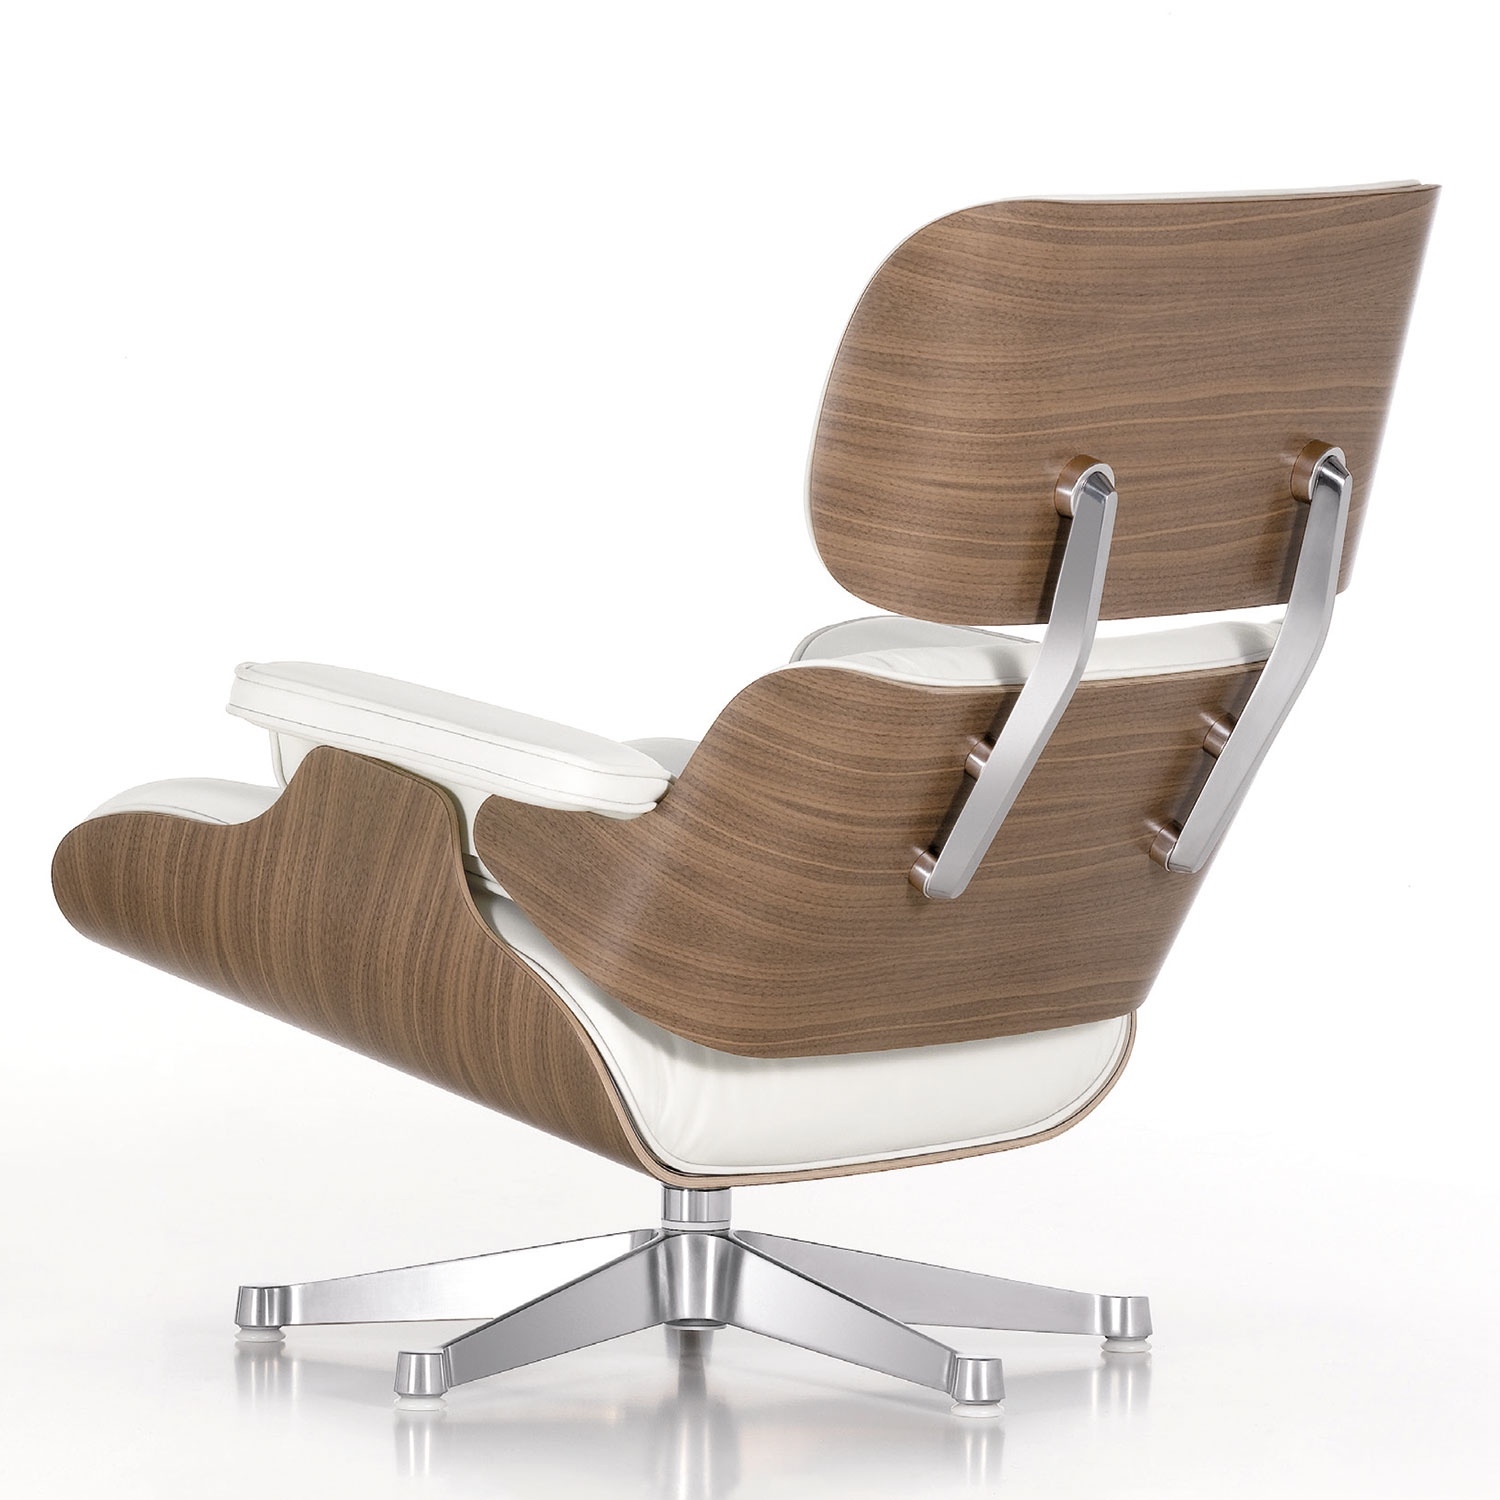 vitra lounge chair white nussbaum leder design eames. Black Bedroom Furniture Sets. Home Design Ideas